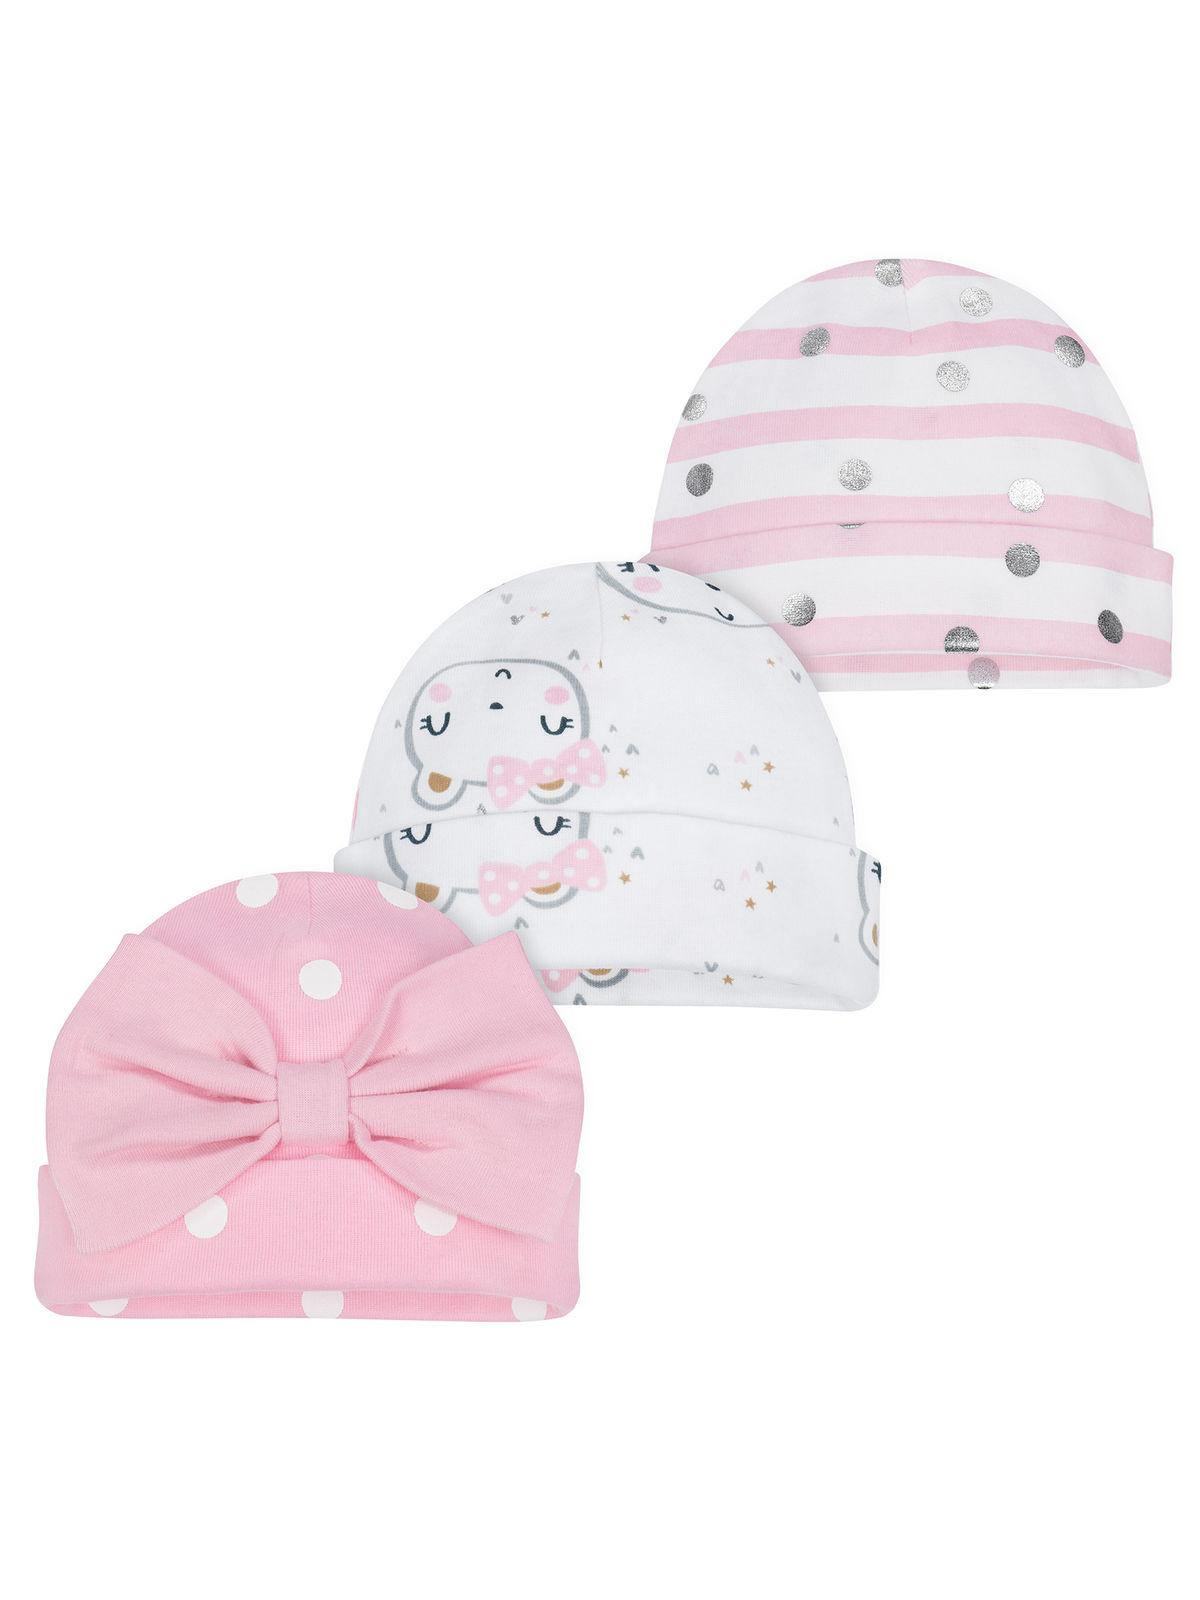 Gerber Baby Girls 3 Pack Organic Caps NEW Sizes Newborn, 0-6